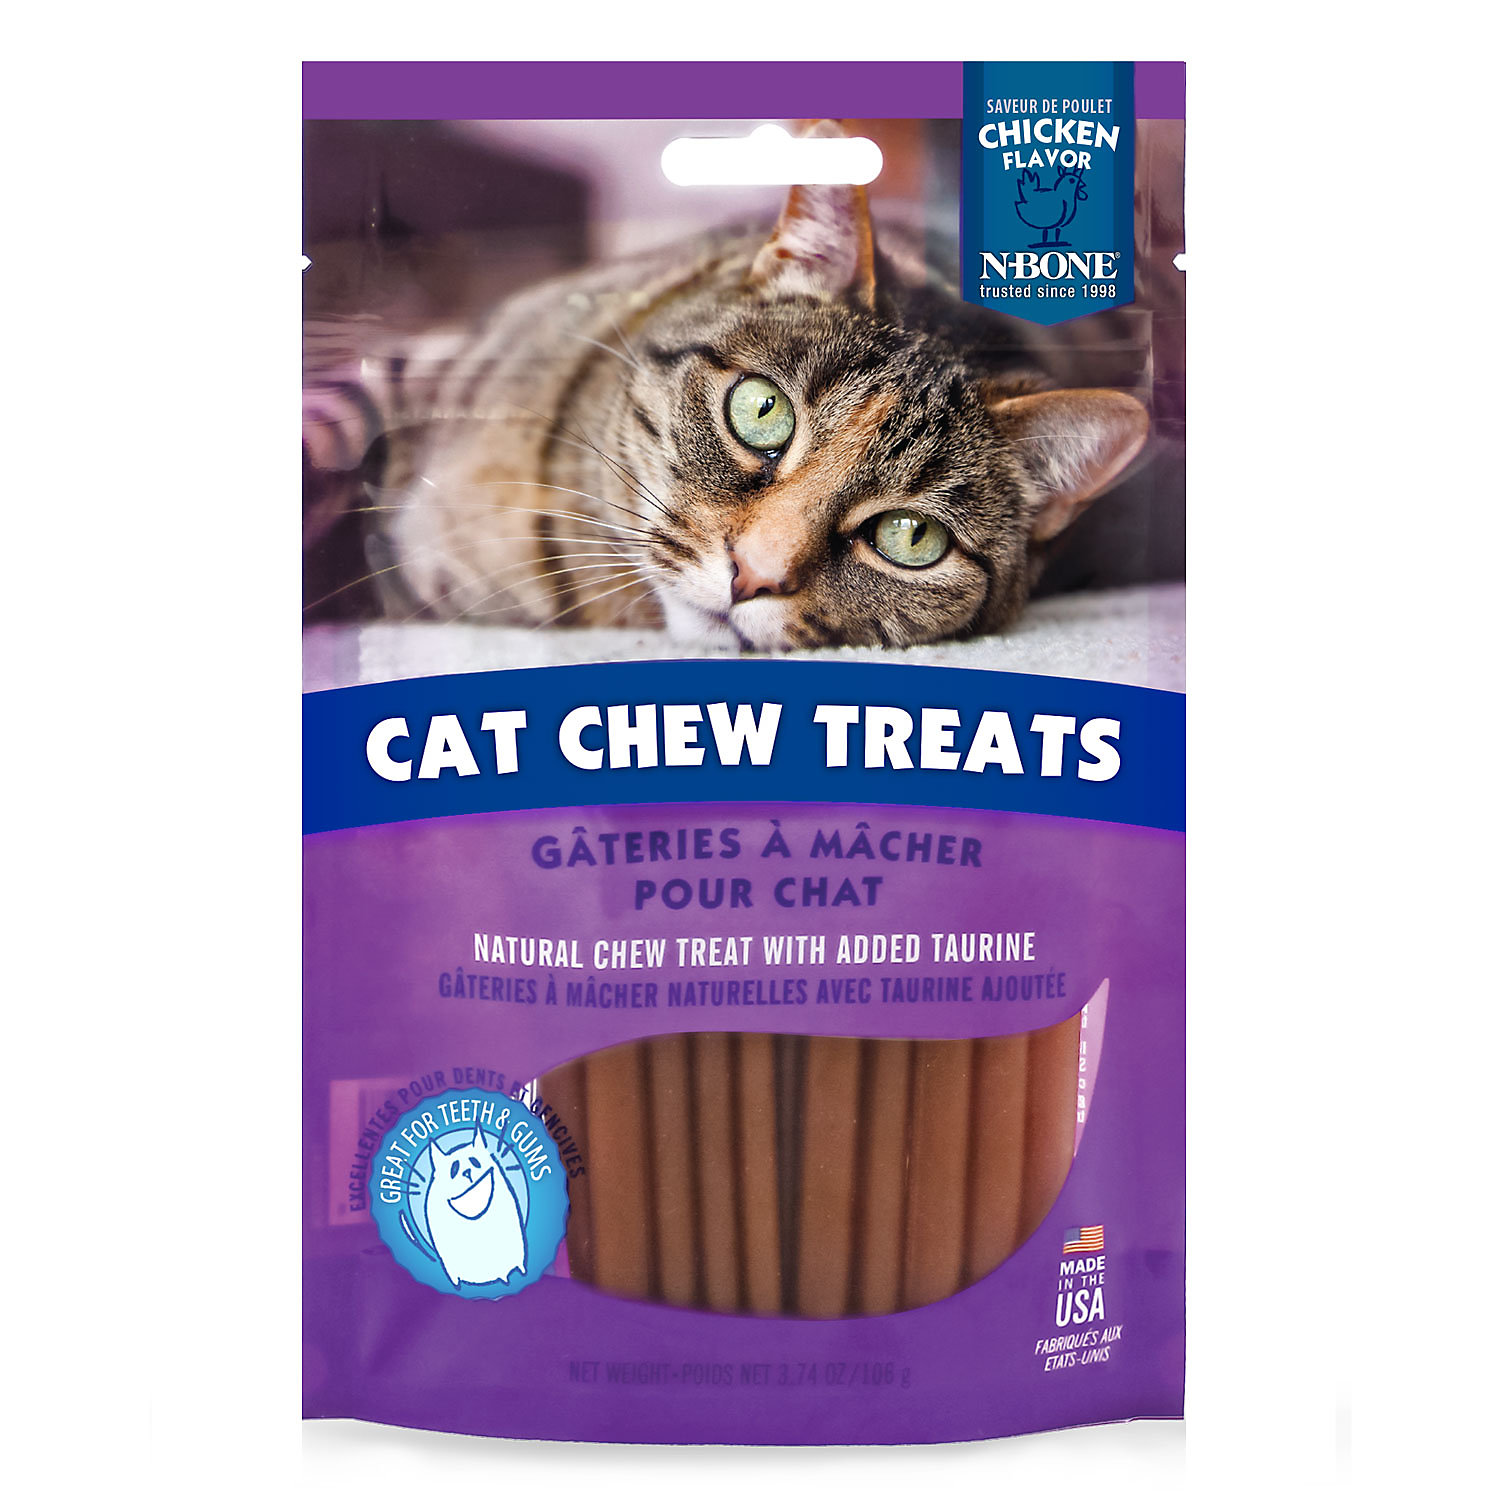 N Bone Cat Chew Treats